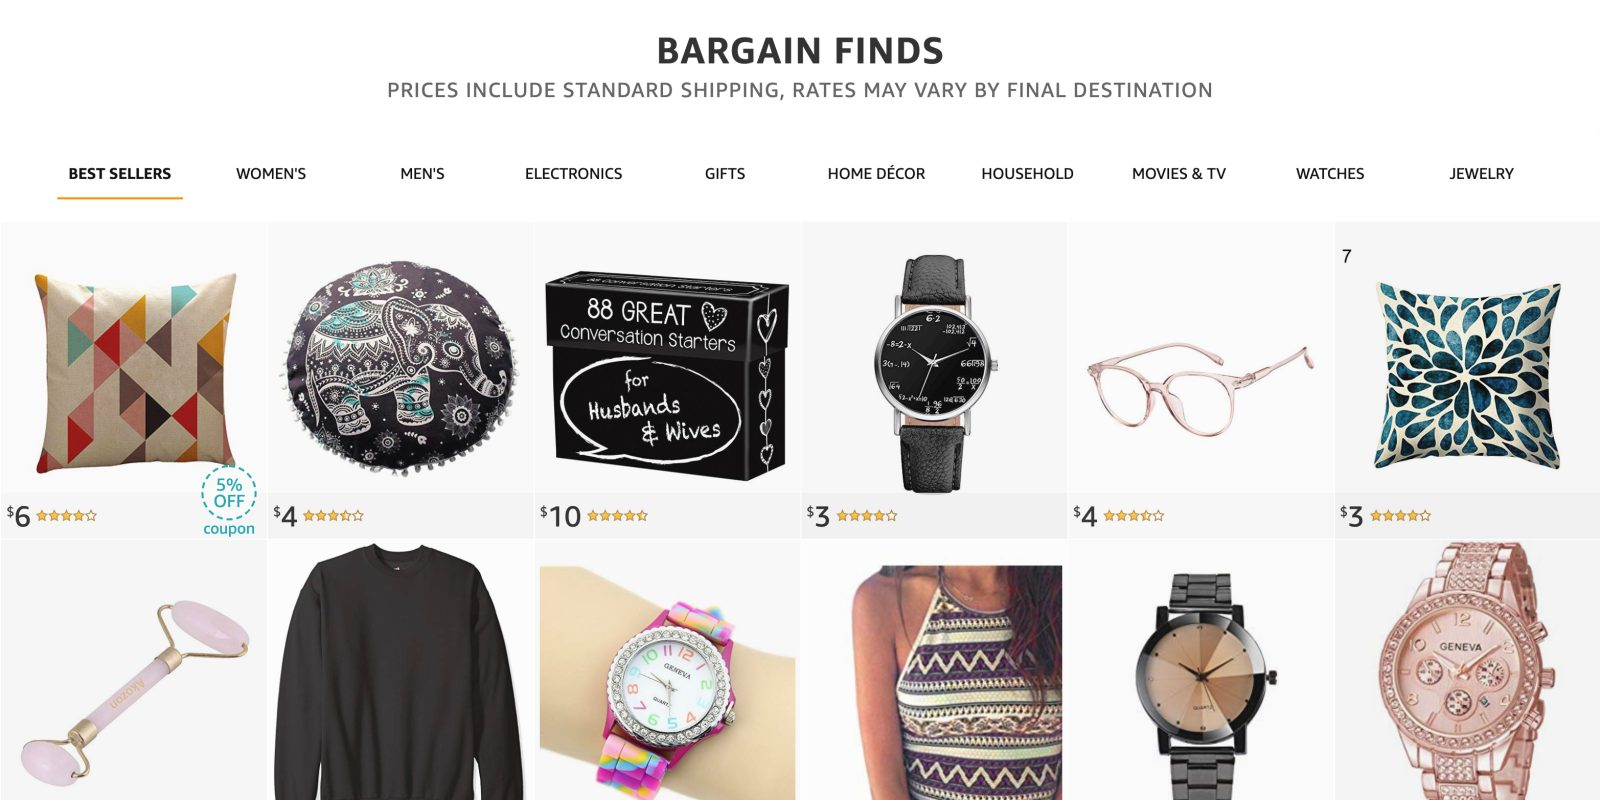 Did you know Amazon has a dollar store? The Bargain Finds shop offers free shipping for all